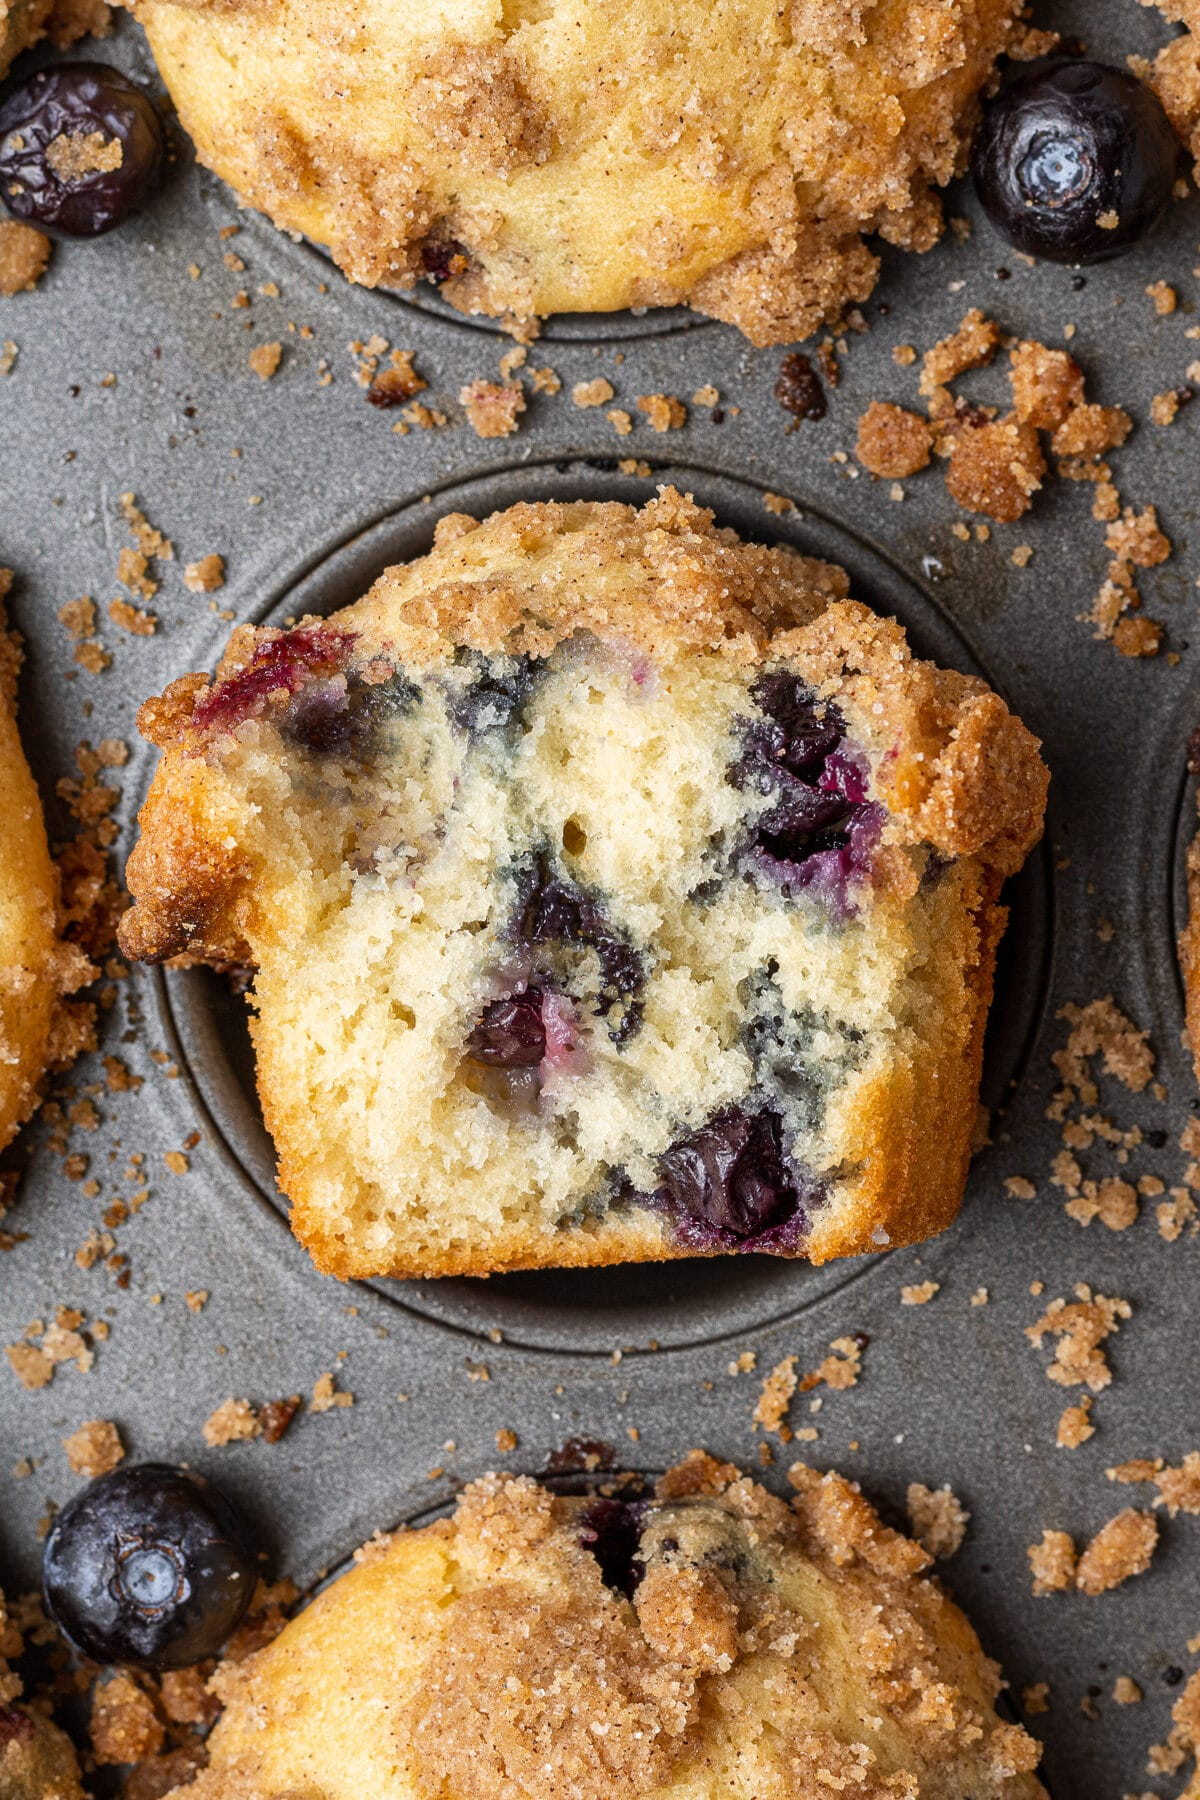 blueberry muffin in a pan with a bite out of it after being baked with blueberries scattered around them